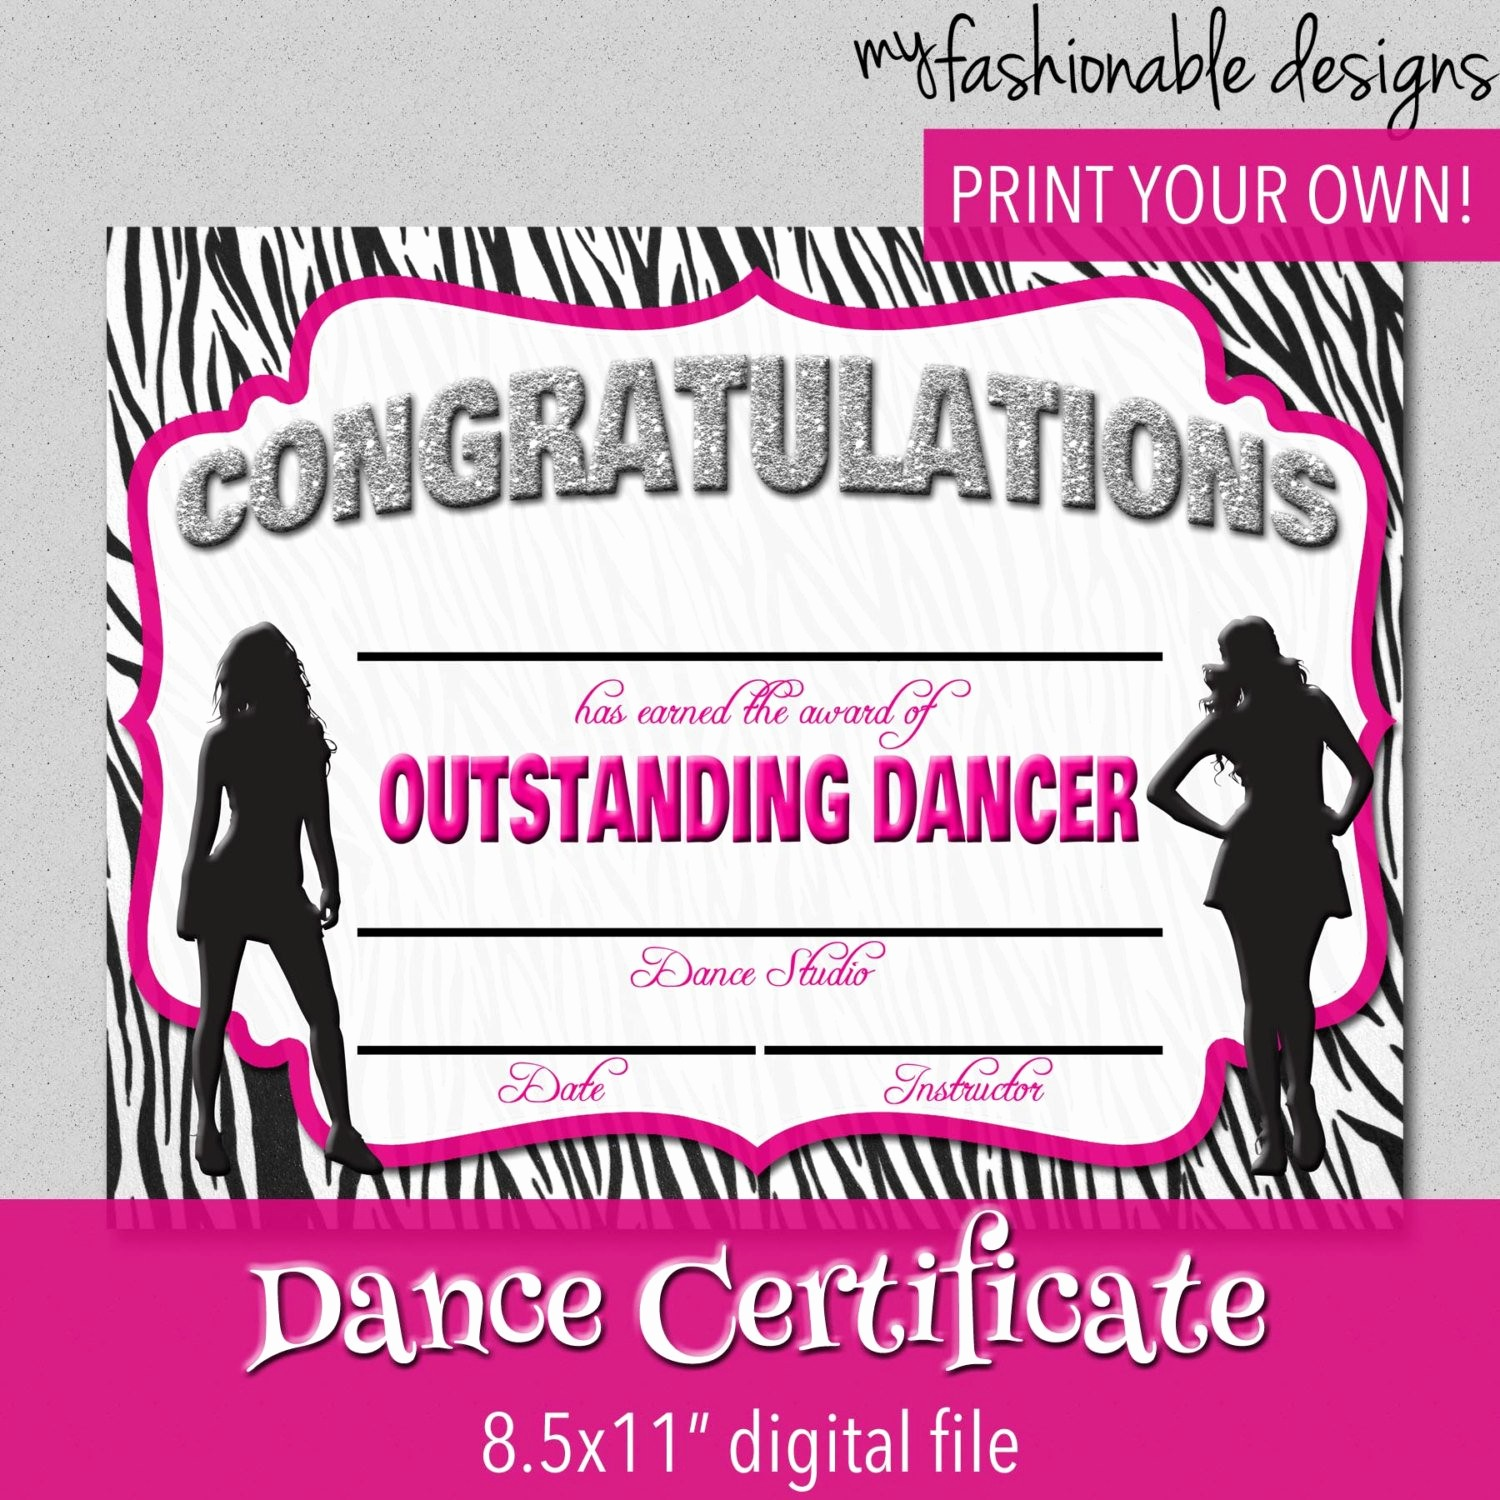 Dance Certificate Templates for Word Awesome Dance Certificate Print Your Own Instant by